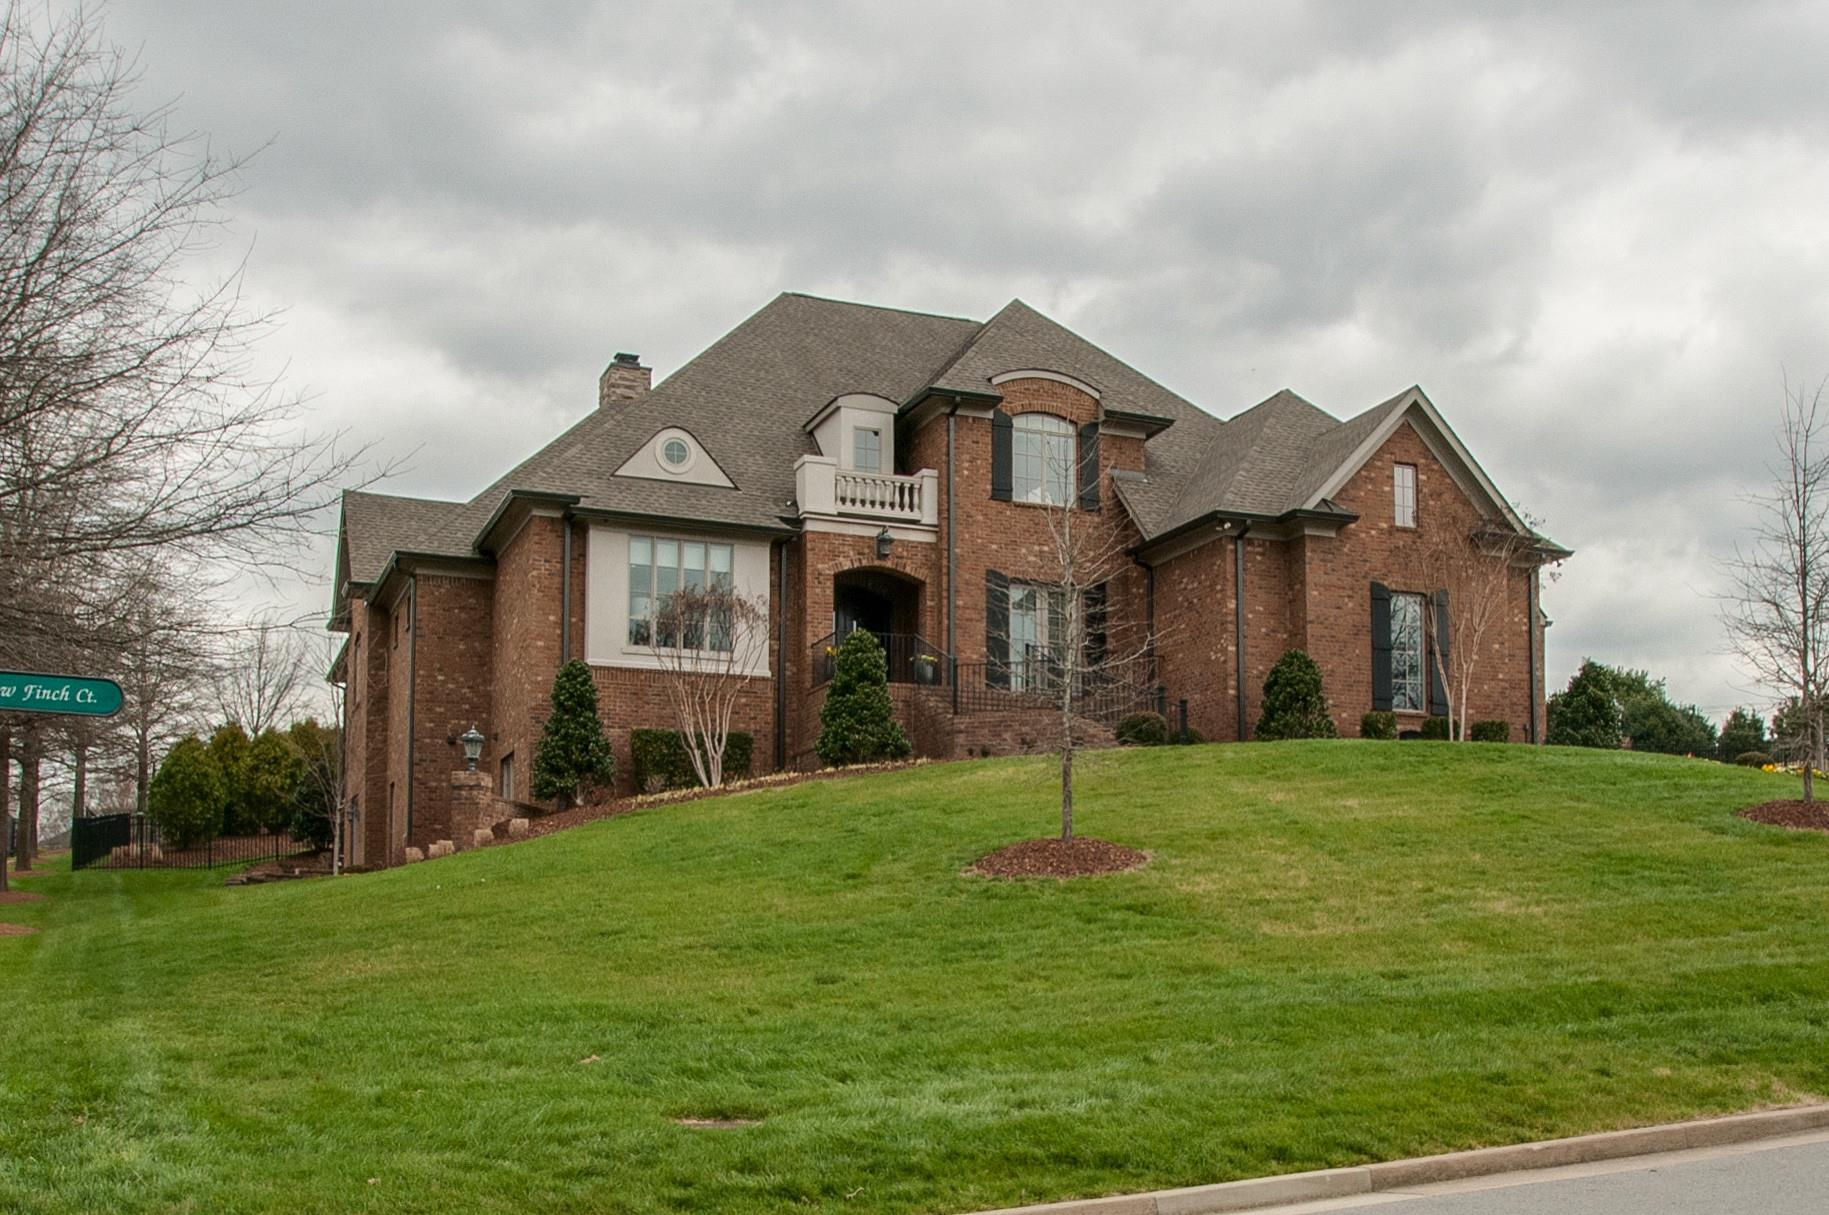 9550 Yellow Finch Ct, Brentwood, TN 37027